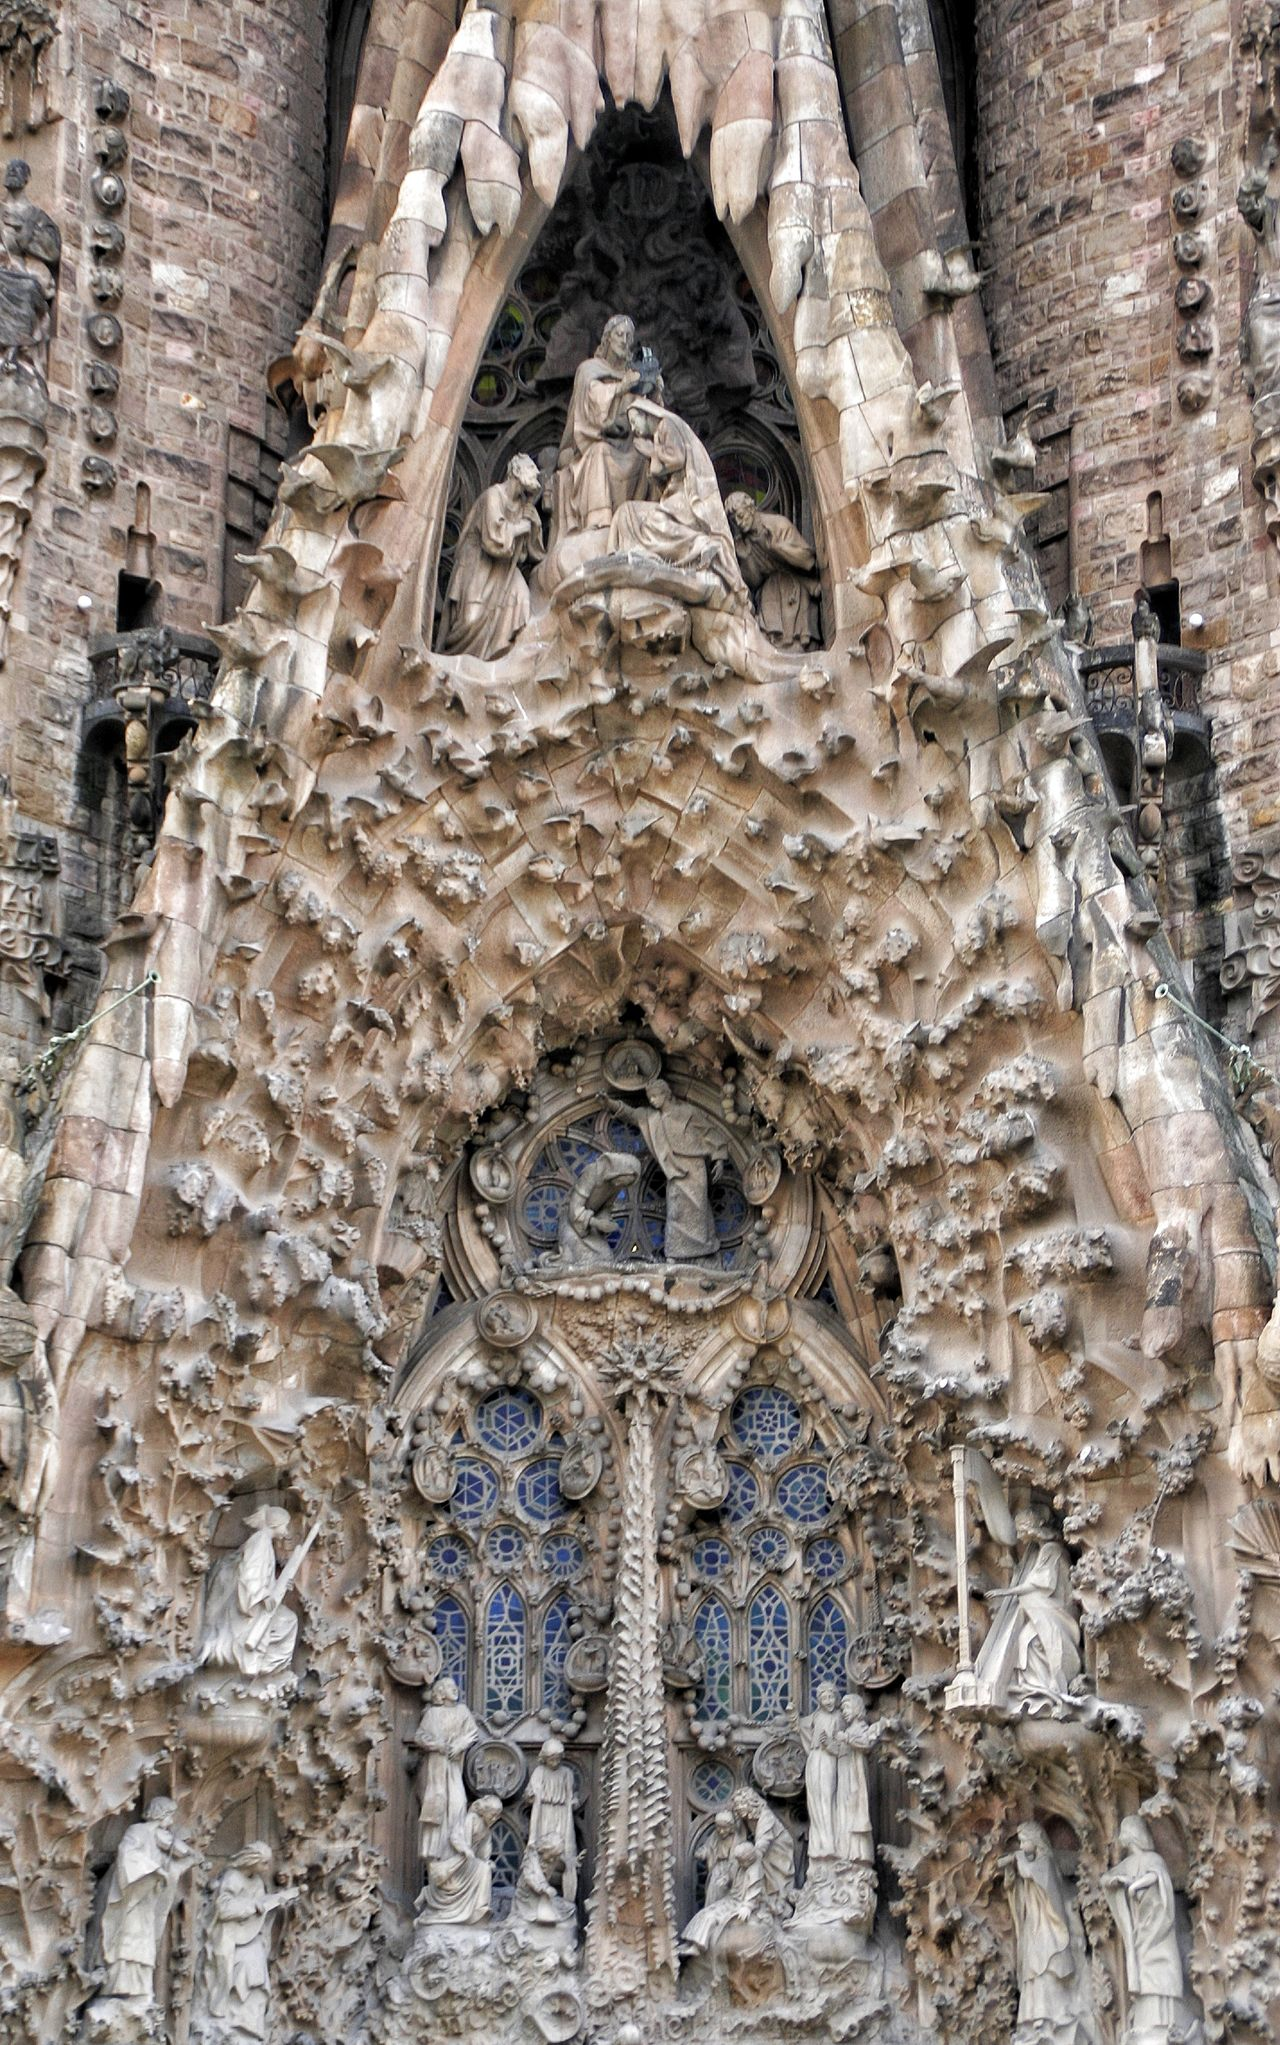 Sagradafamilia Barcelona Catalonia Catalunya Architecture Religion Travel Travel Destinations Church Architecture Church Architecture Photography Architectural Detail Architecture And Art Gaudi Barcelona Gaudì Architecture Work Gaudi EyeEm Best Shots Architecture EyeEmNewHere